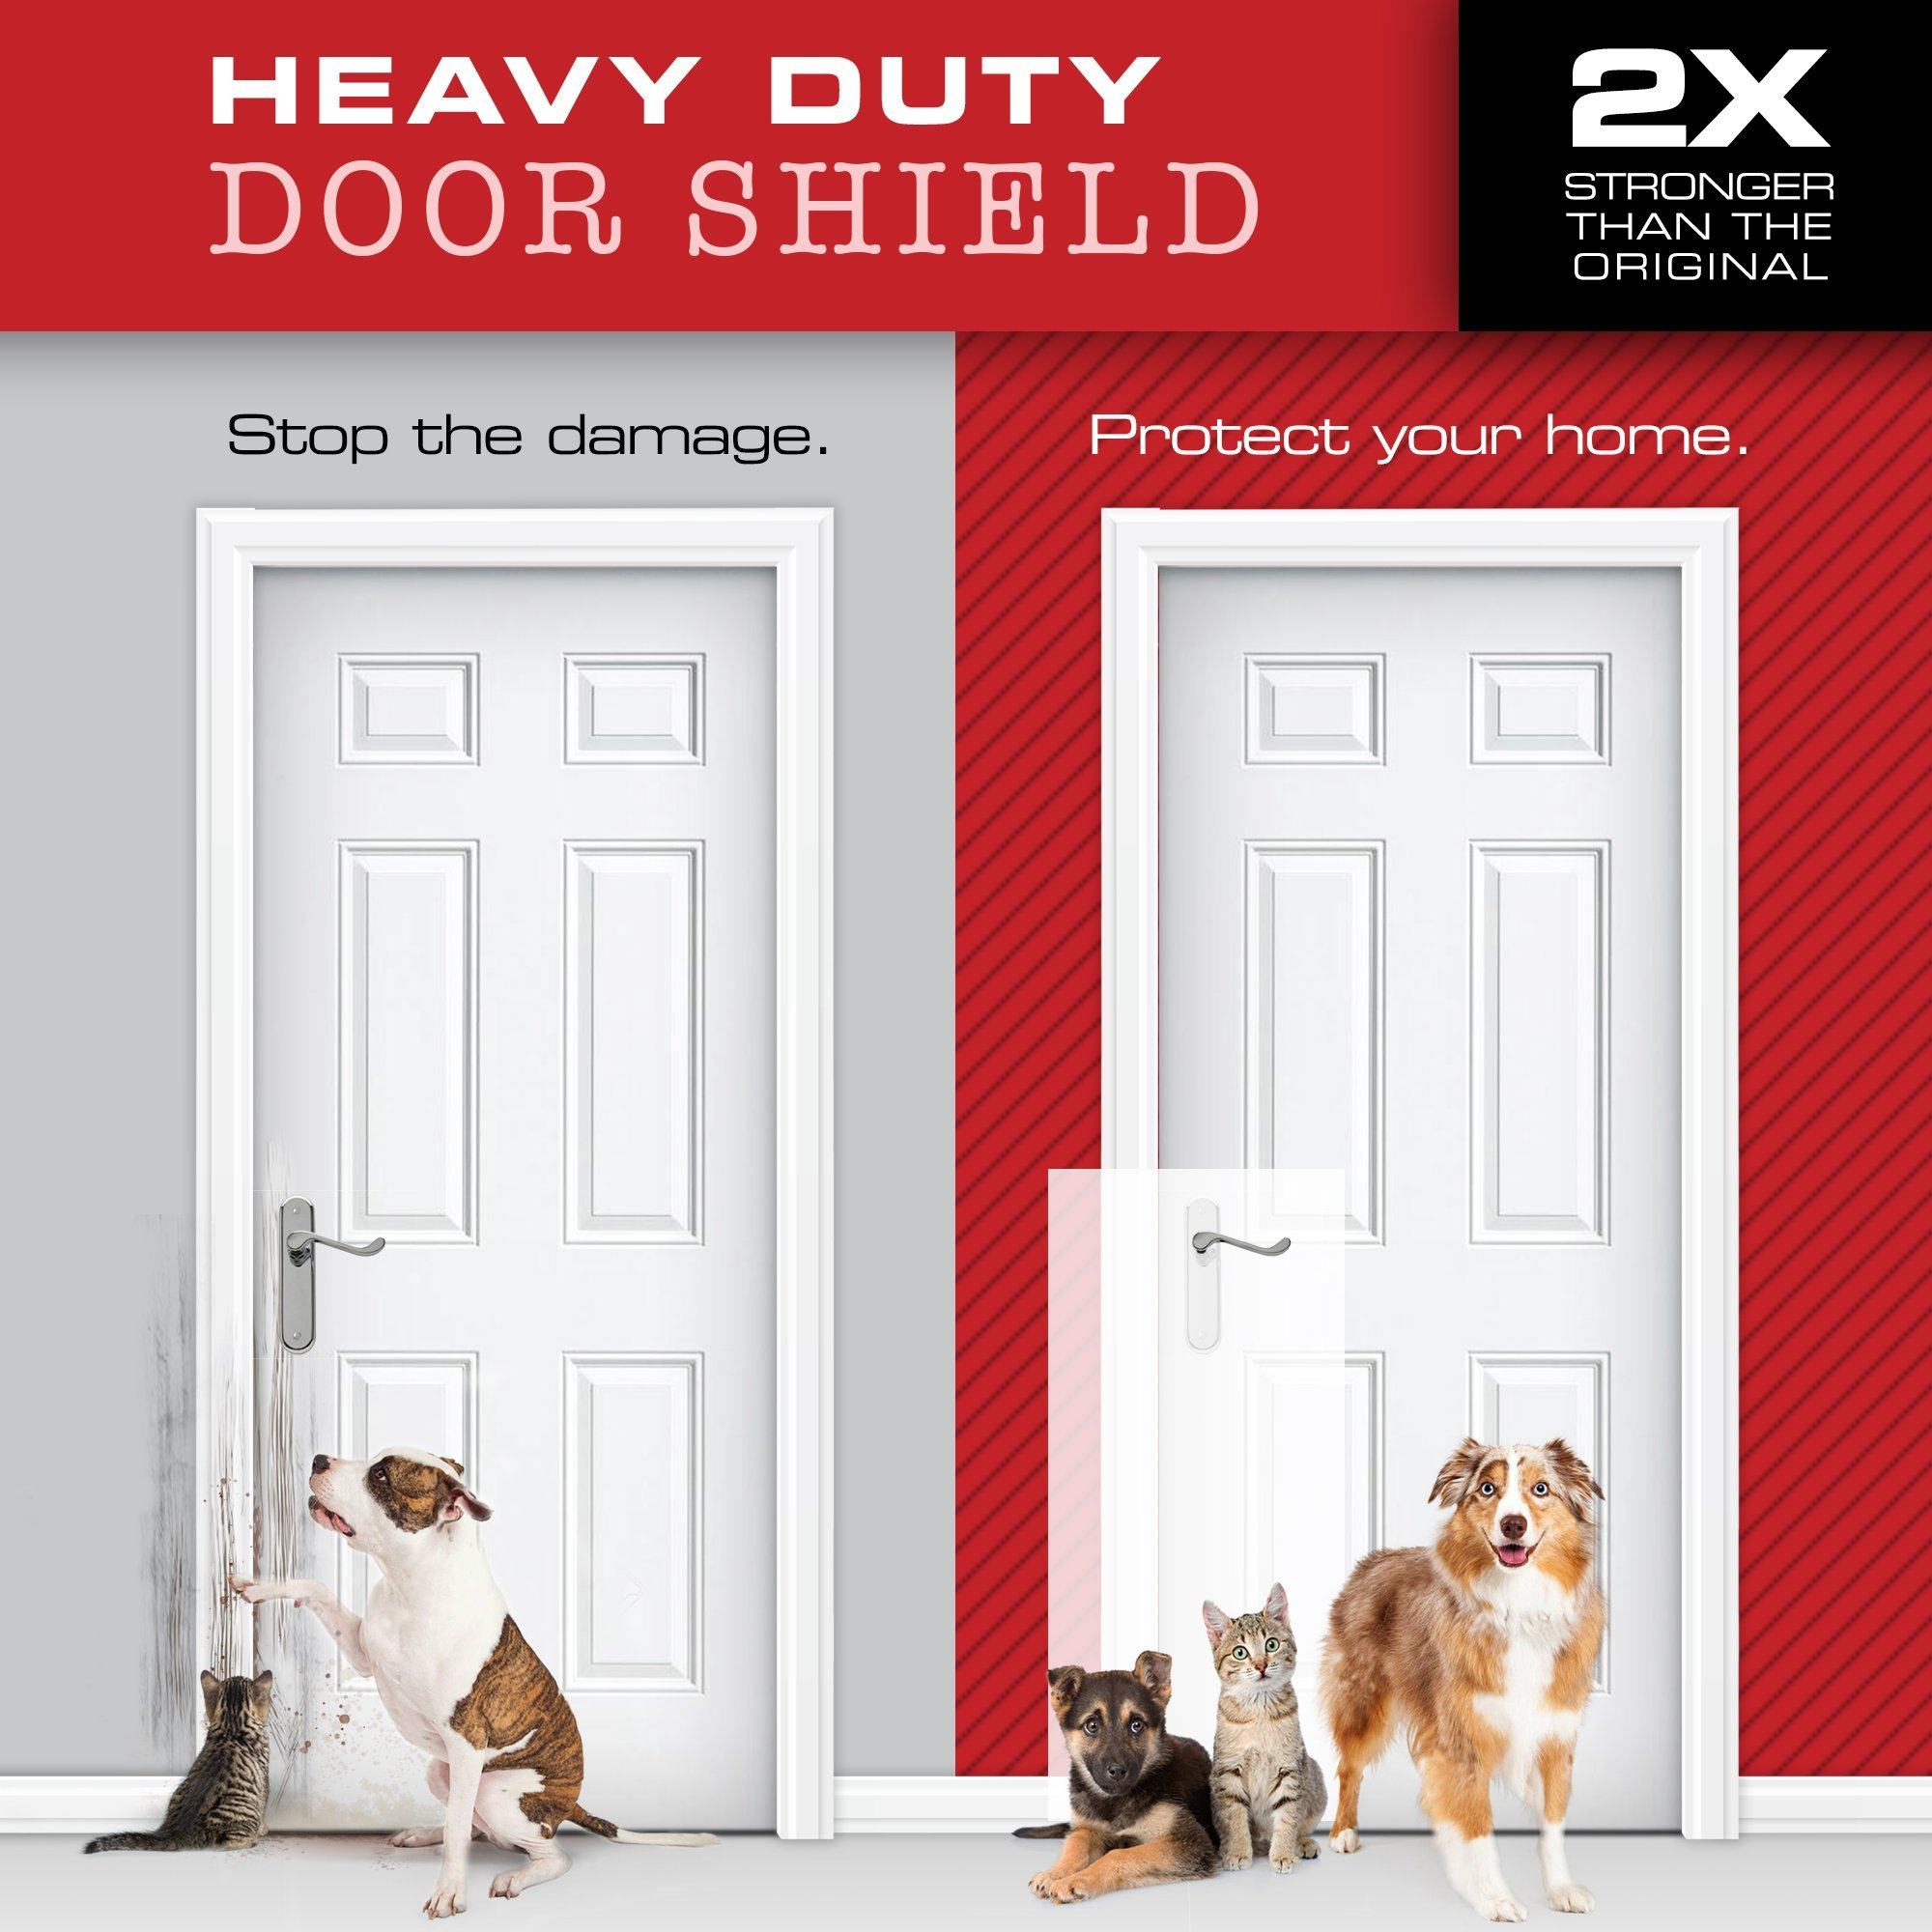 Heavy Duty CLAWGUARD - Big Dog Scratch Shield - Ultimate Door, Frame and Wall Protection